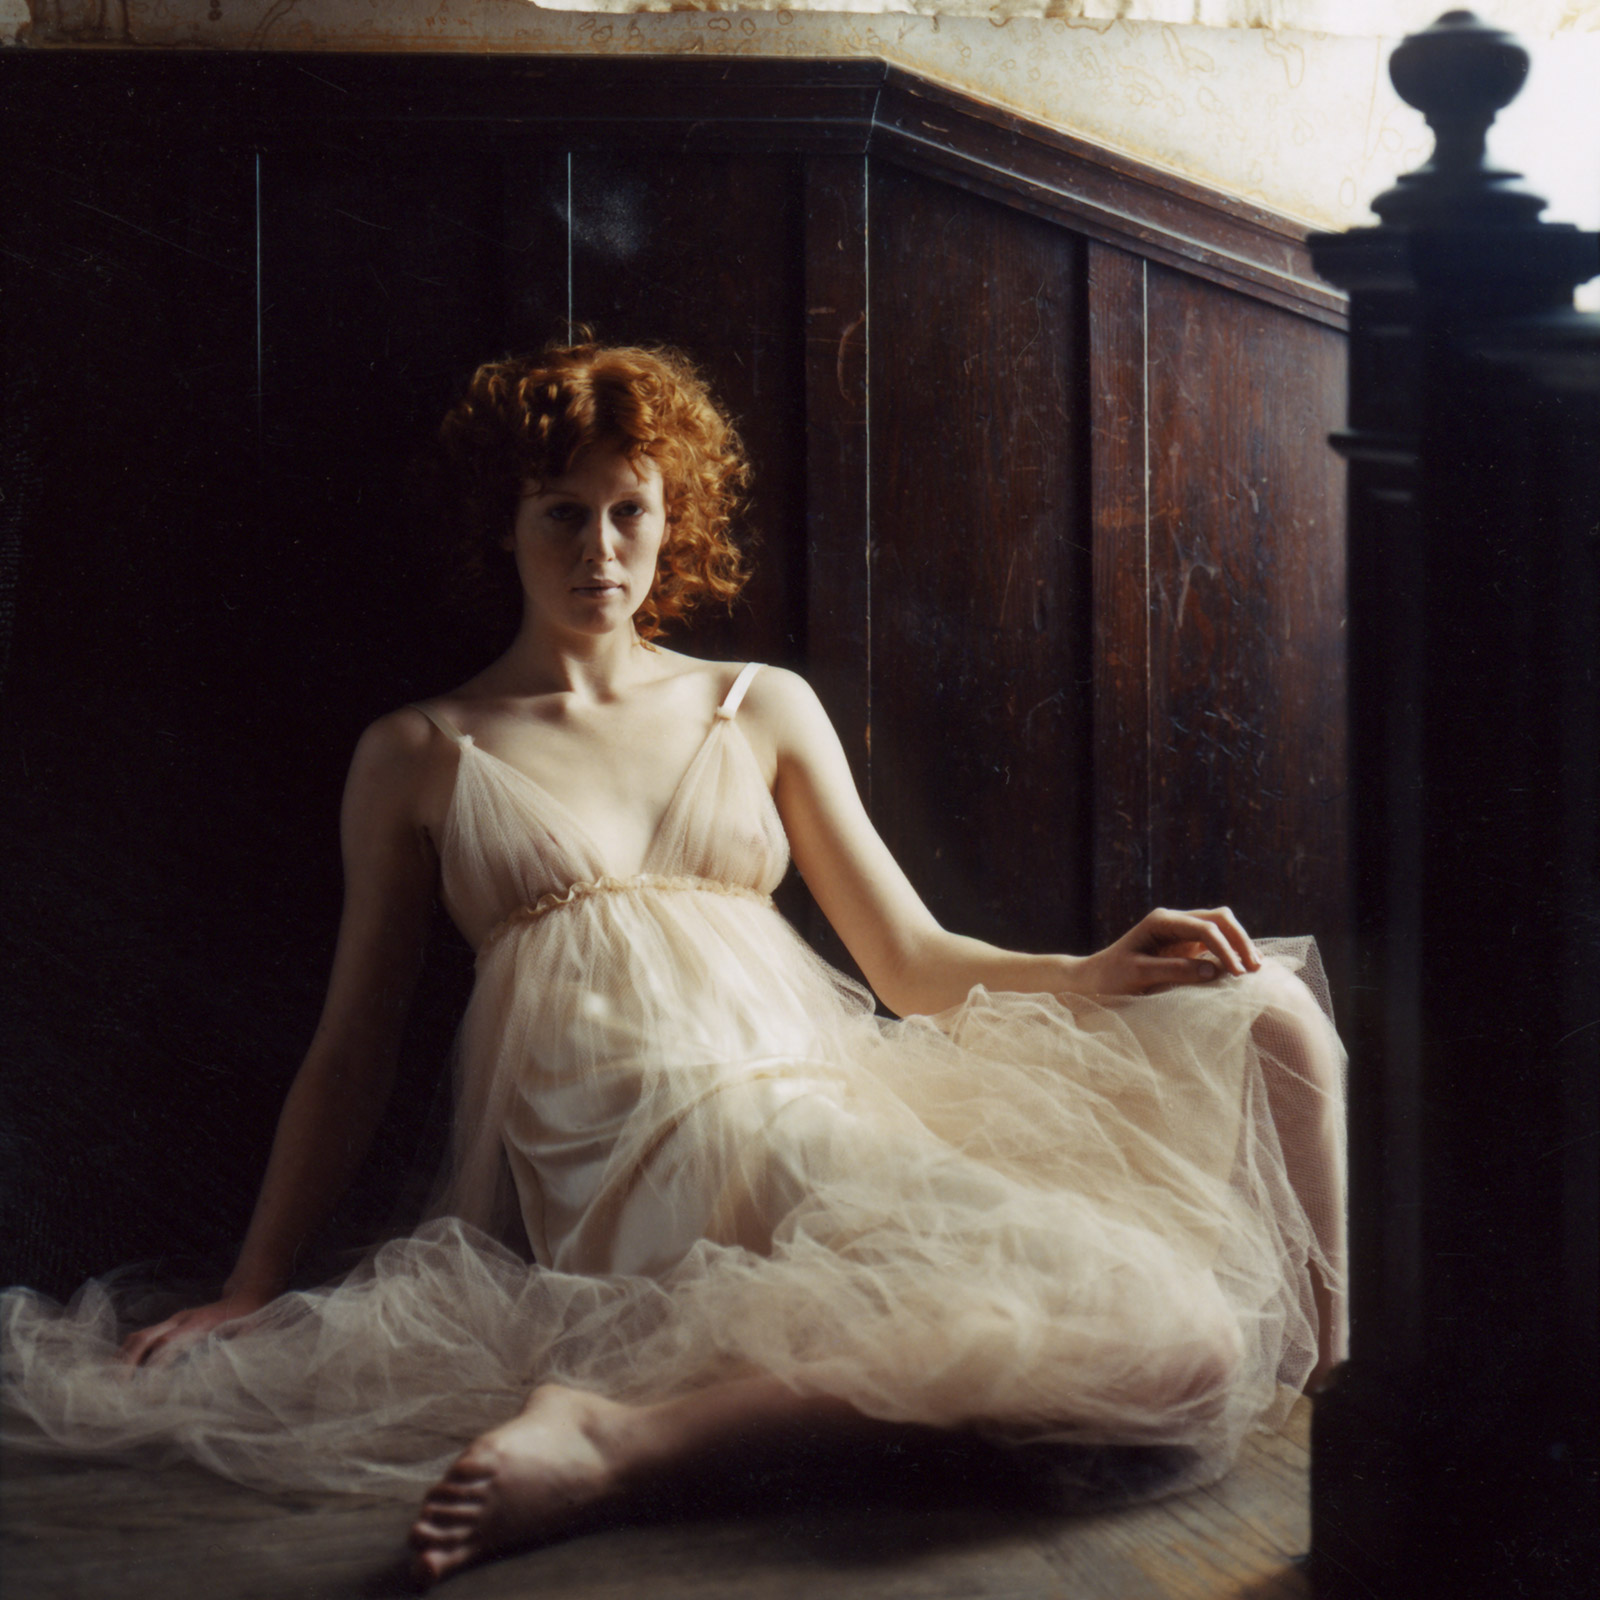 woman with red hair sitting at top of staircase wearing long white dress